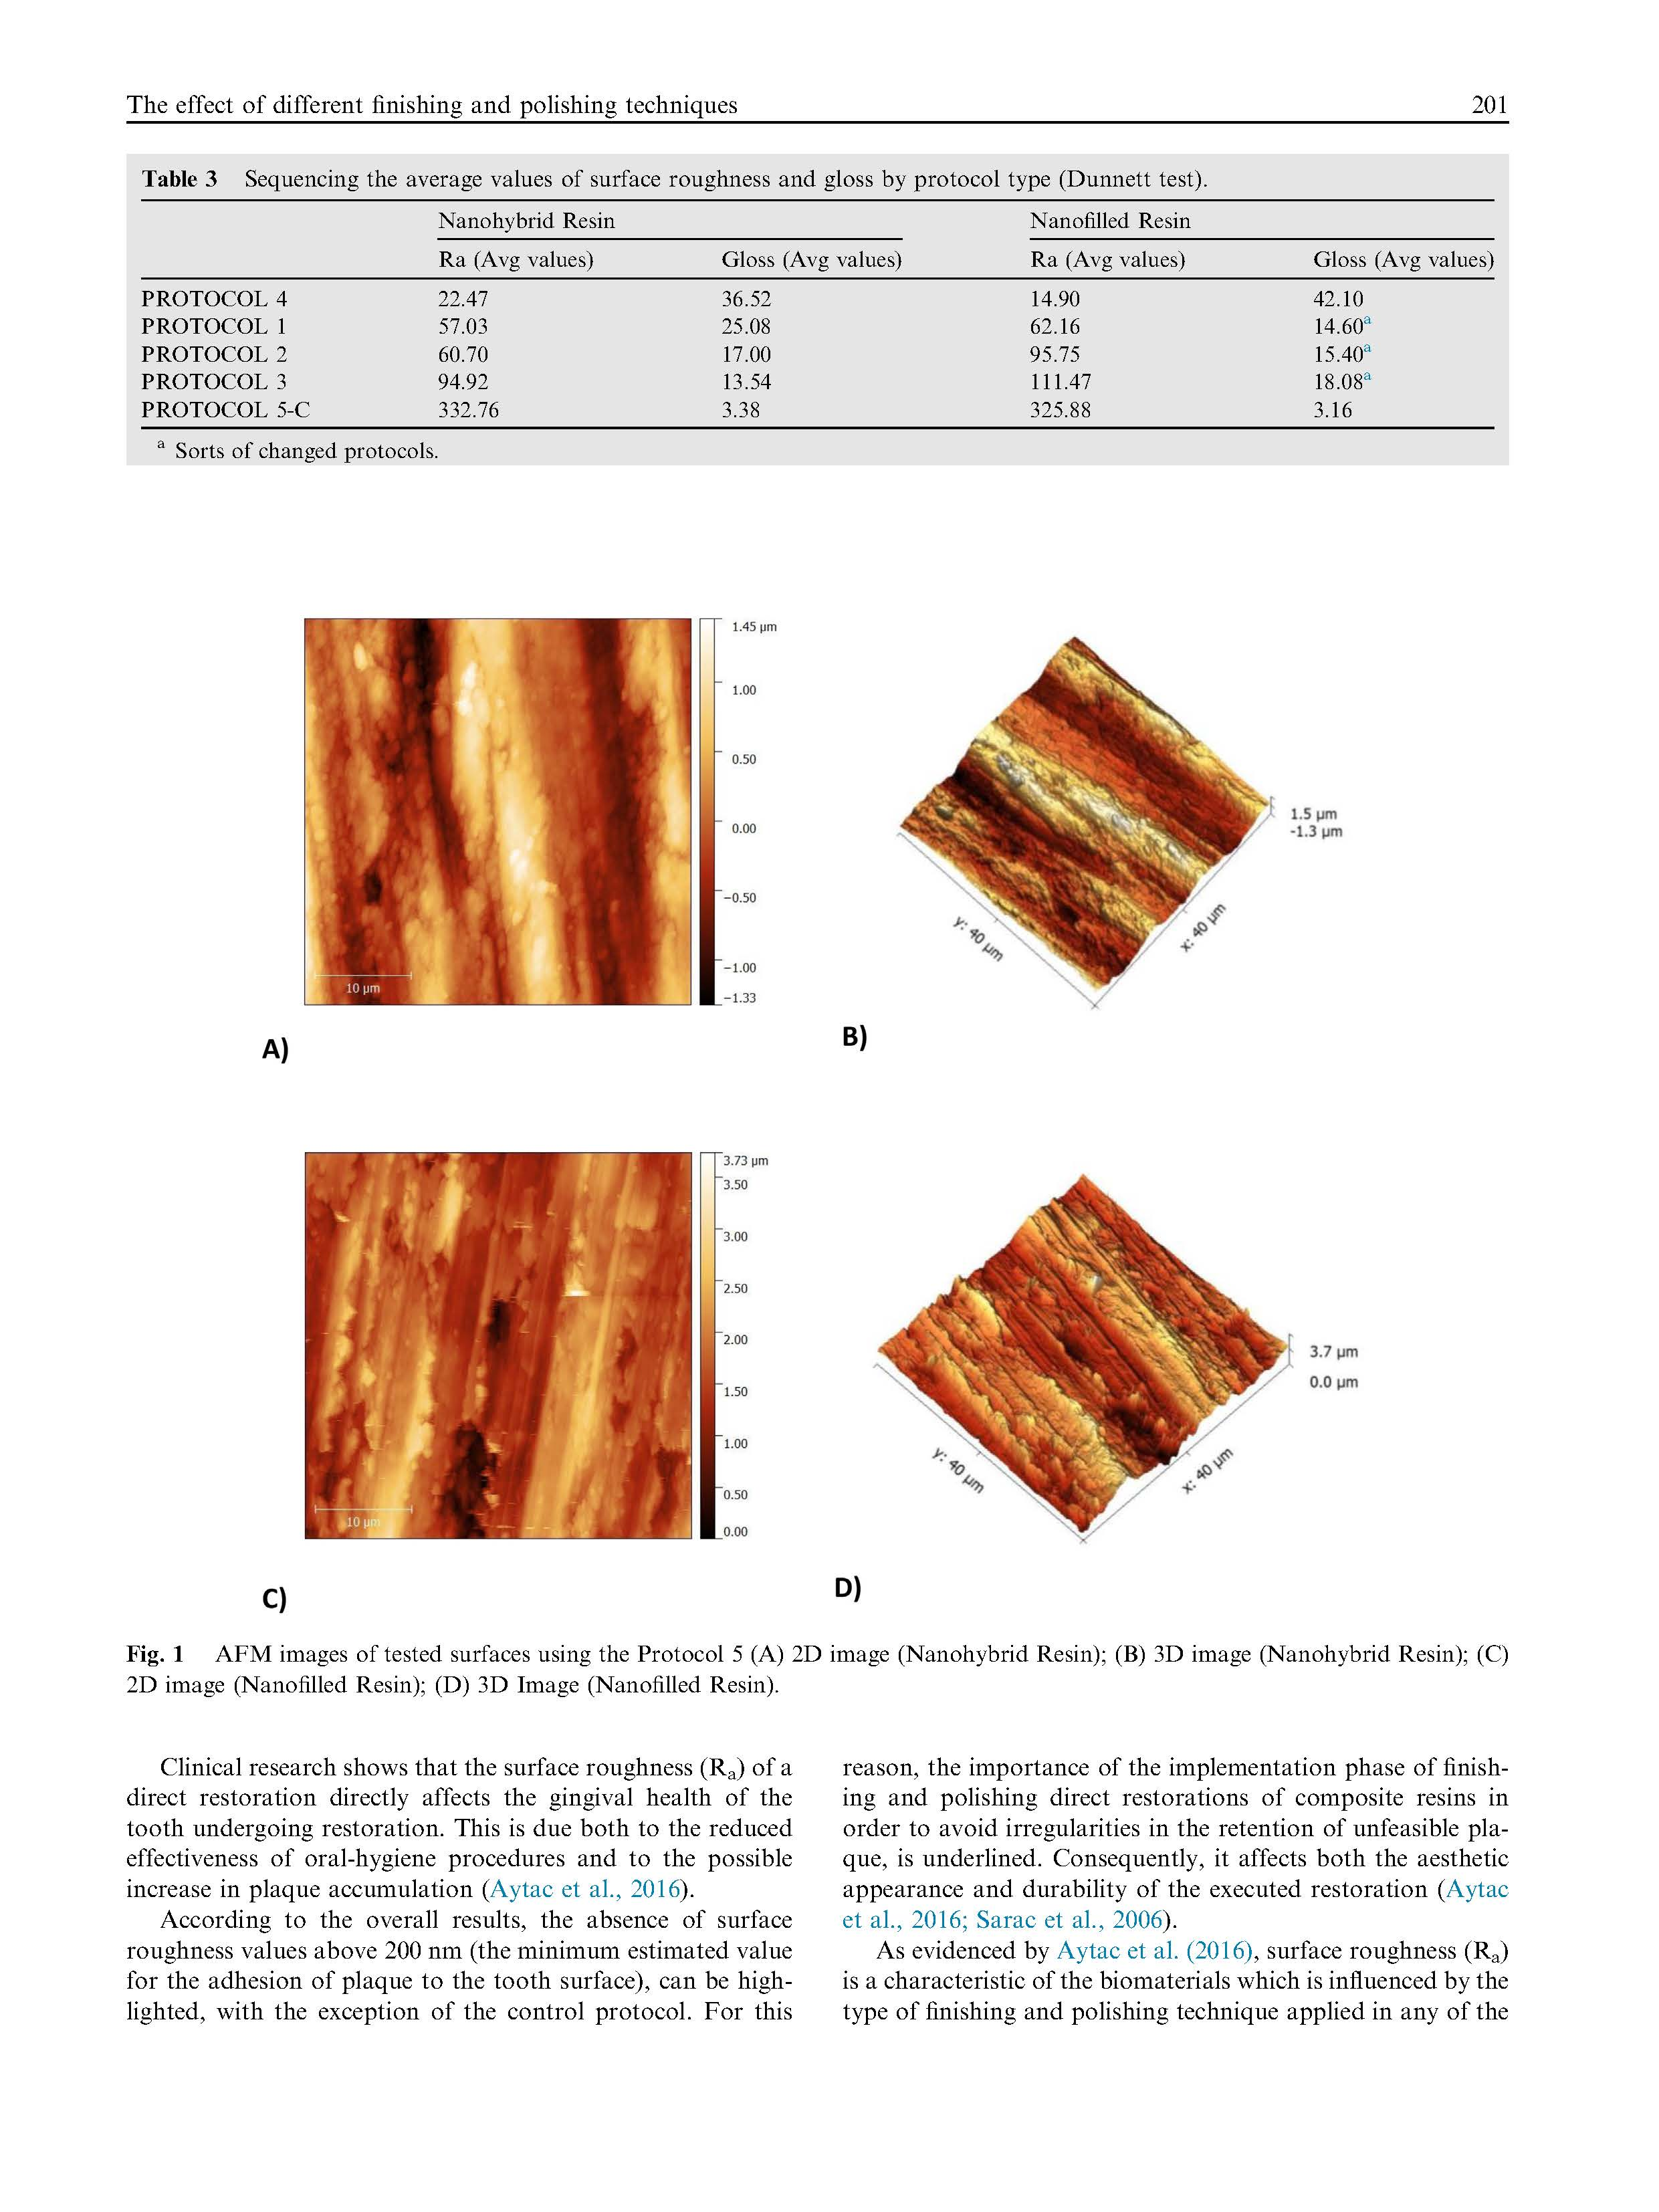 The effect of different finishing and polishing techniques on surface roughness and gloss of two nanocomposites_Page_05.jpg